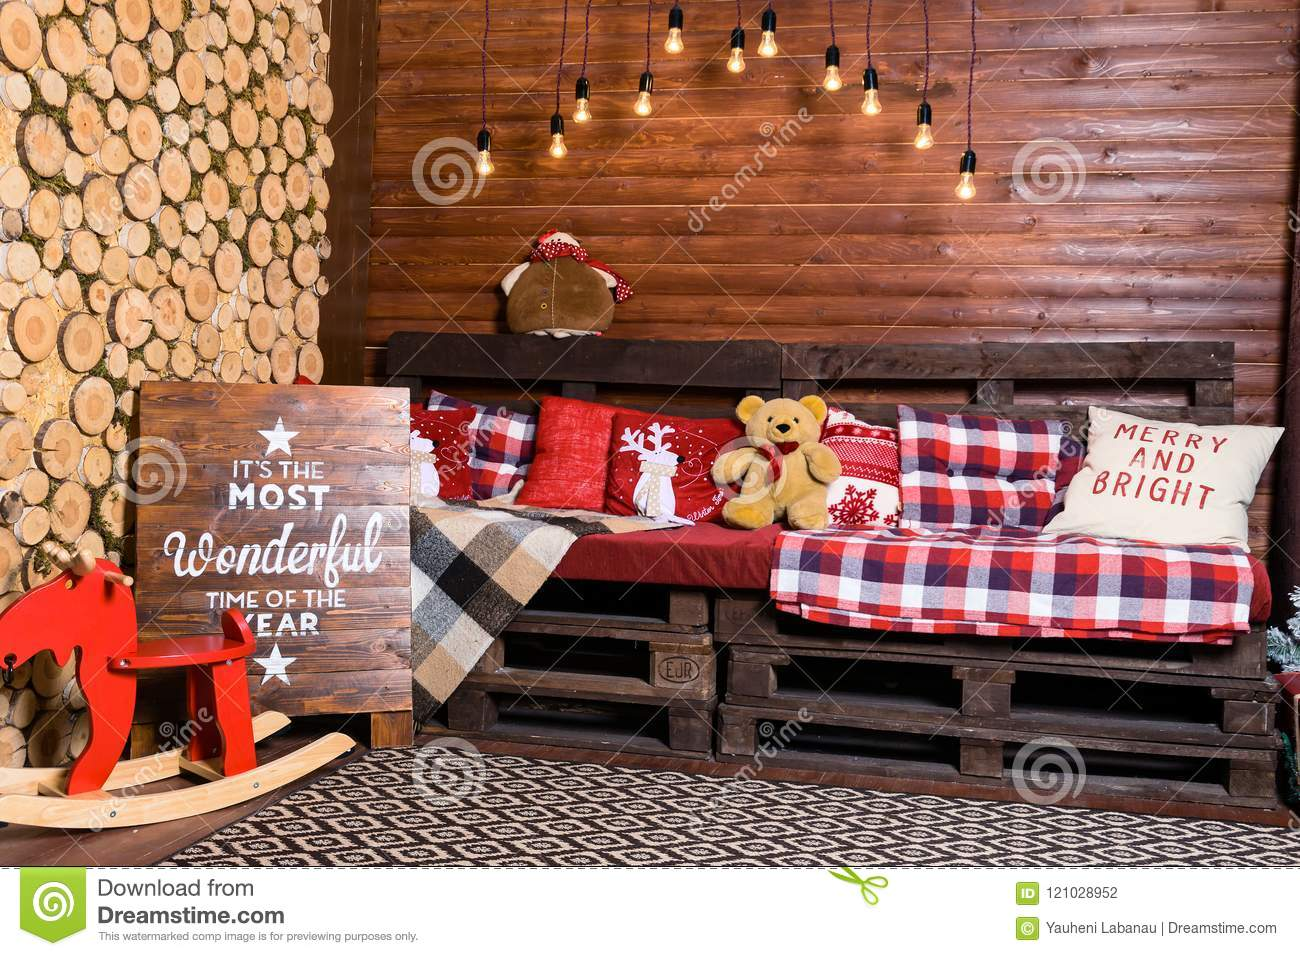 beautiful christmas interior design room decorated with wooden sofa with warm blanket lights teddy bear and wooden horse